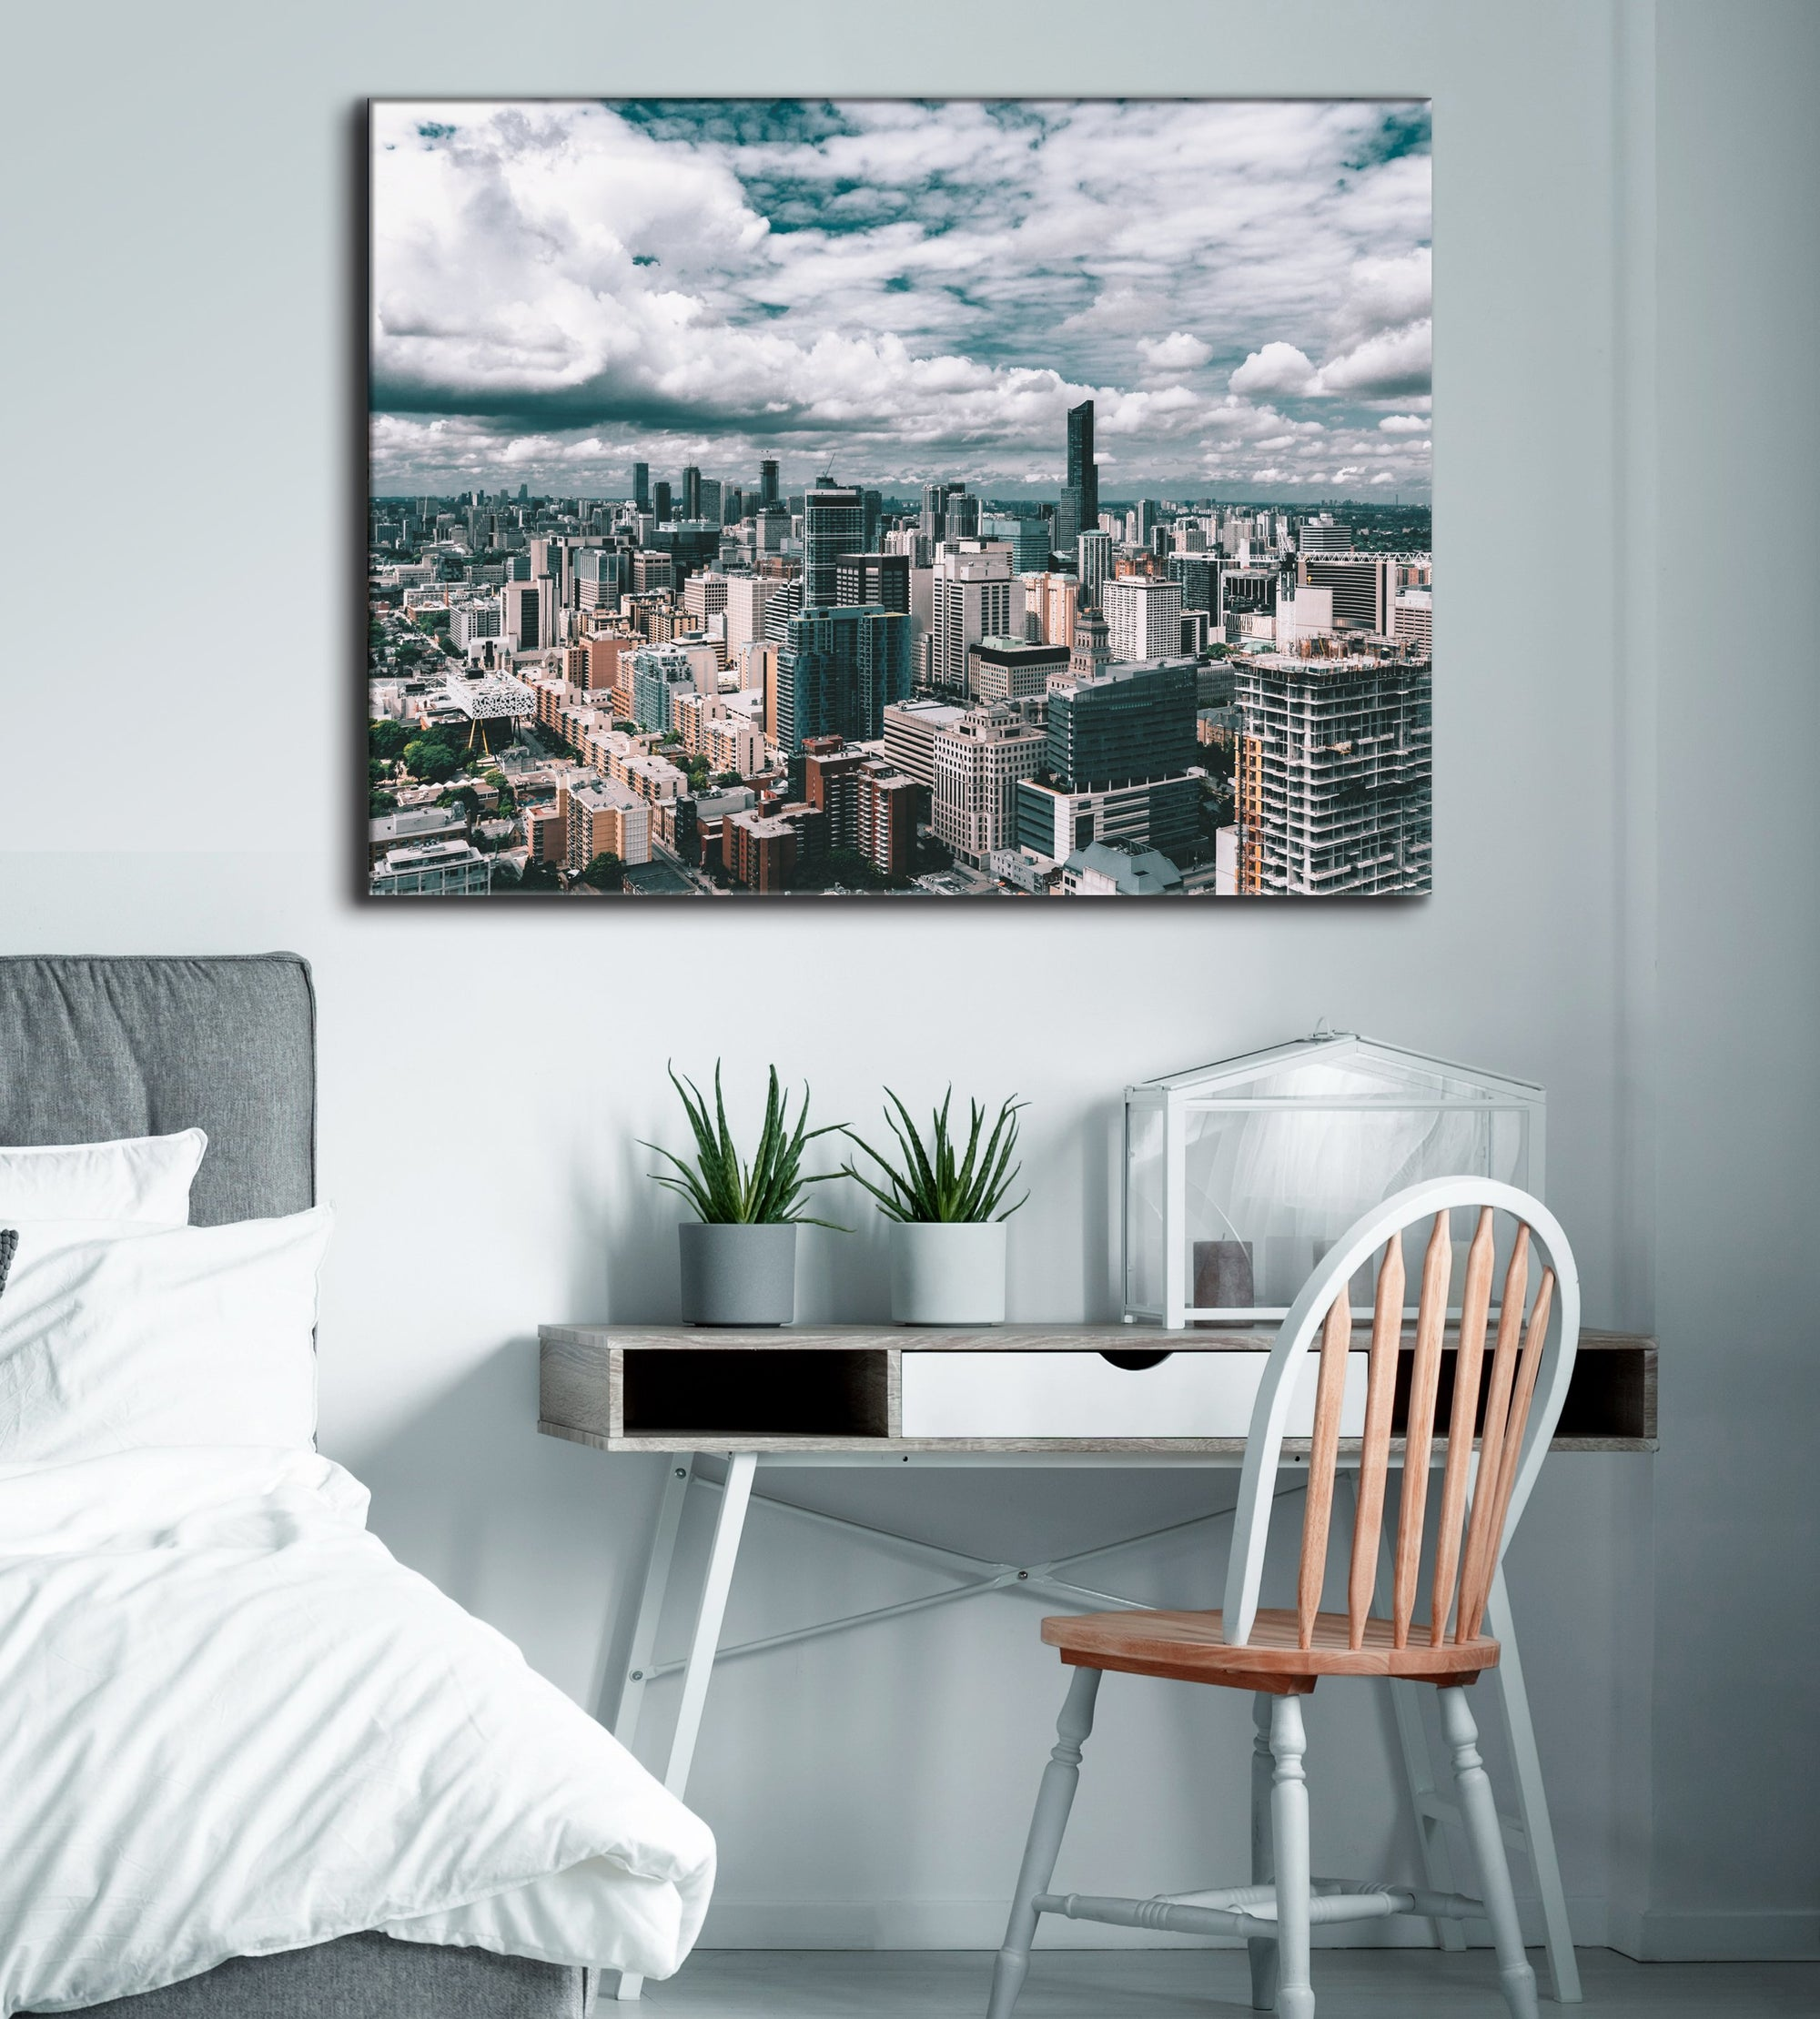 City Wall Art:  Cloudy City (Wood Frame Ready To Hang)